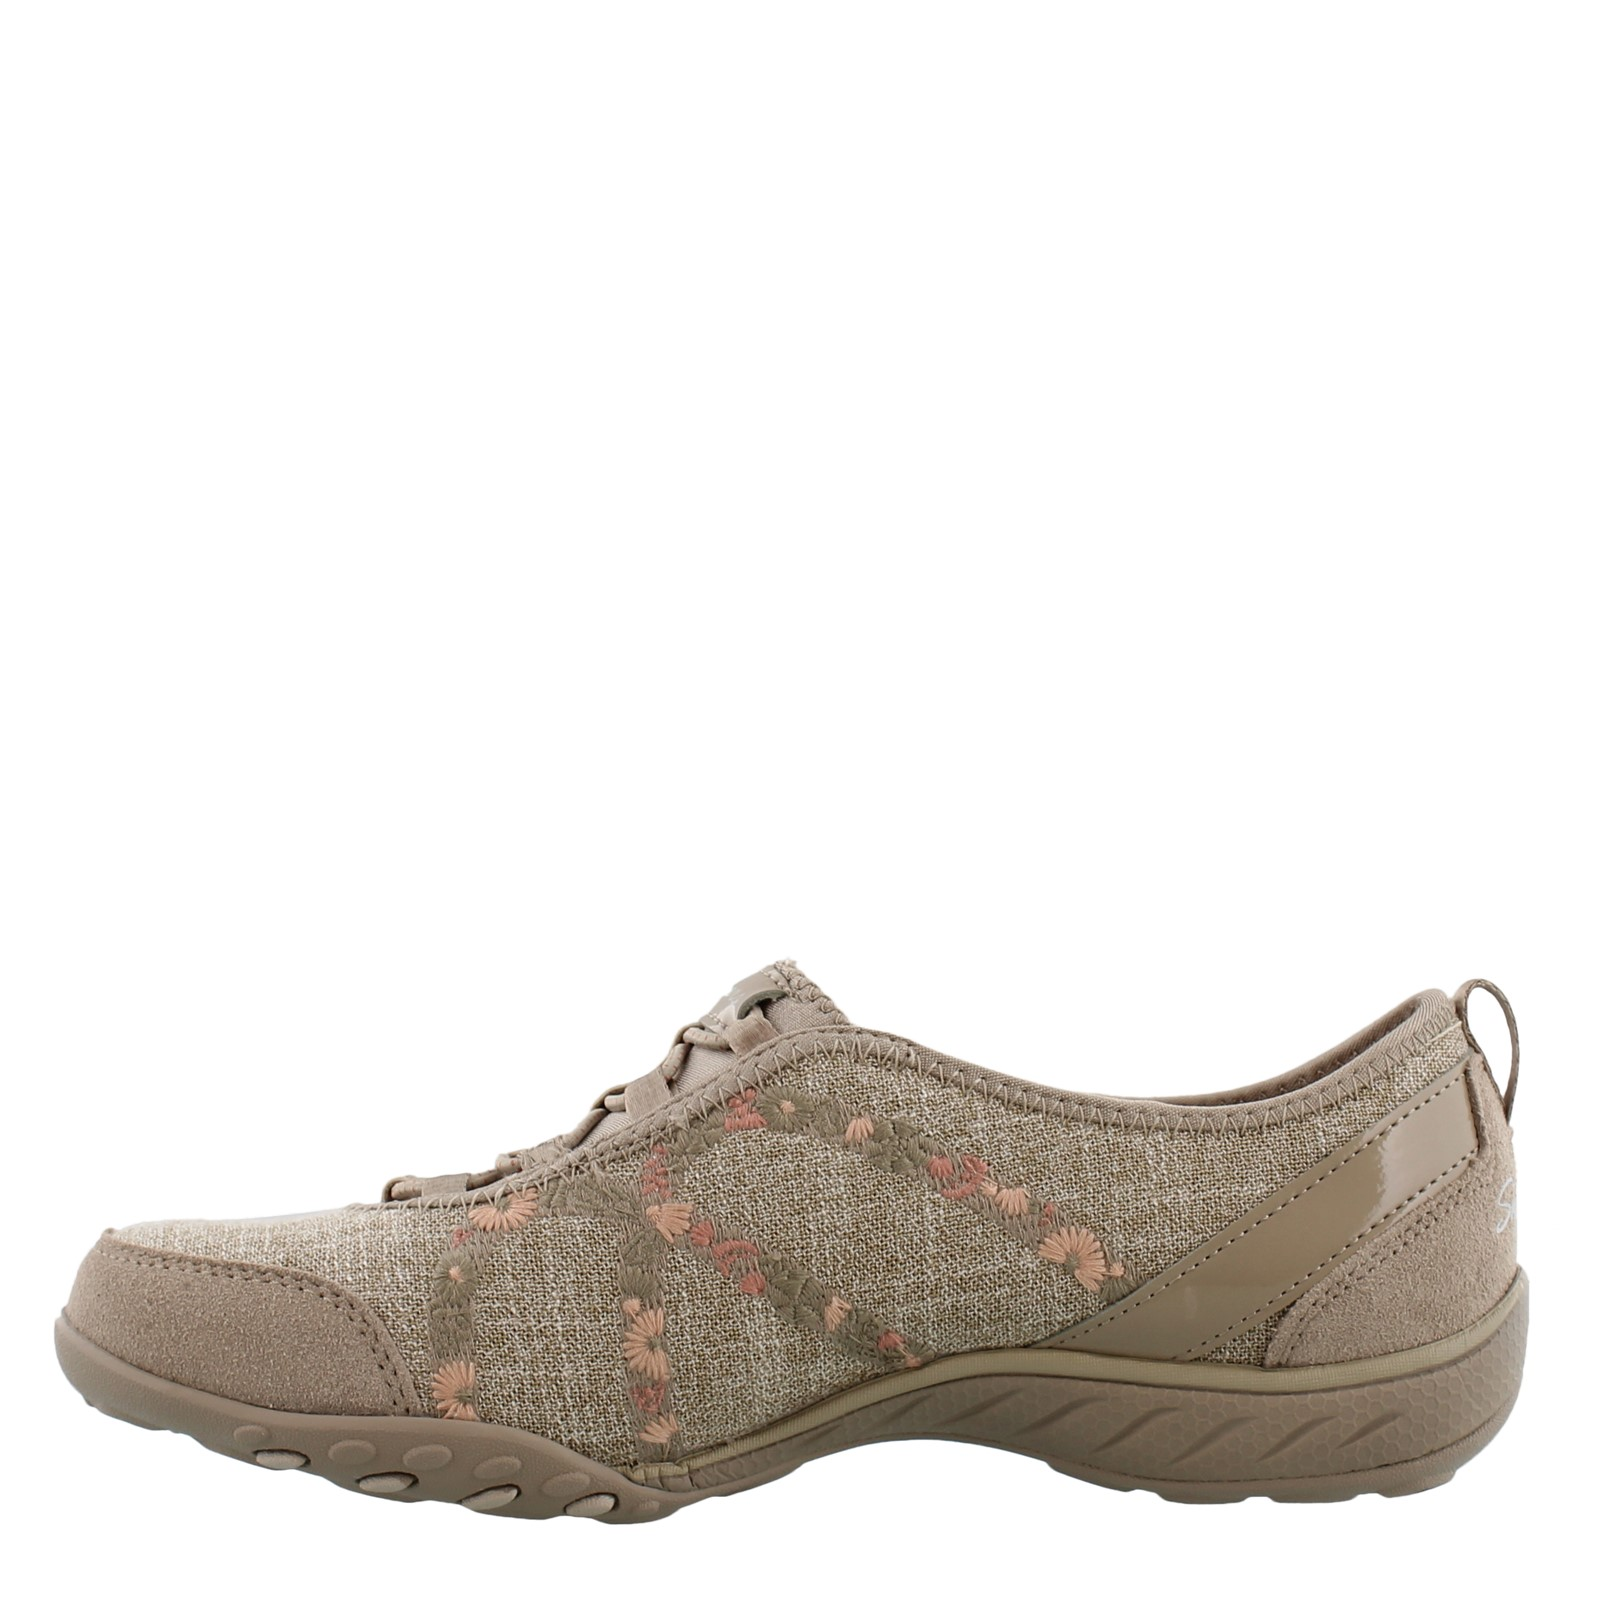 more photos 65e88 ac291 Next. add to favorites. Women s Skechers, Relaxed Fit Breathe-Easy - Garden  Joy Shoes